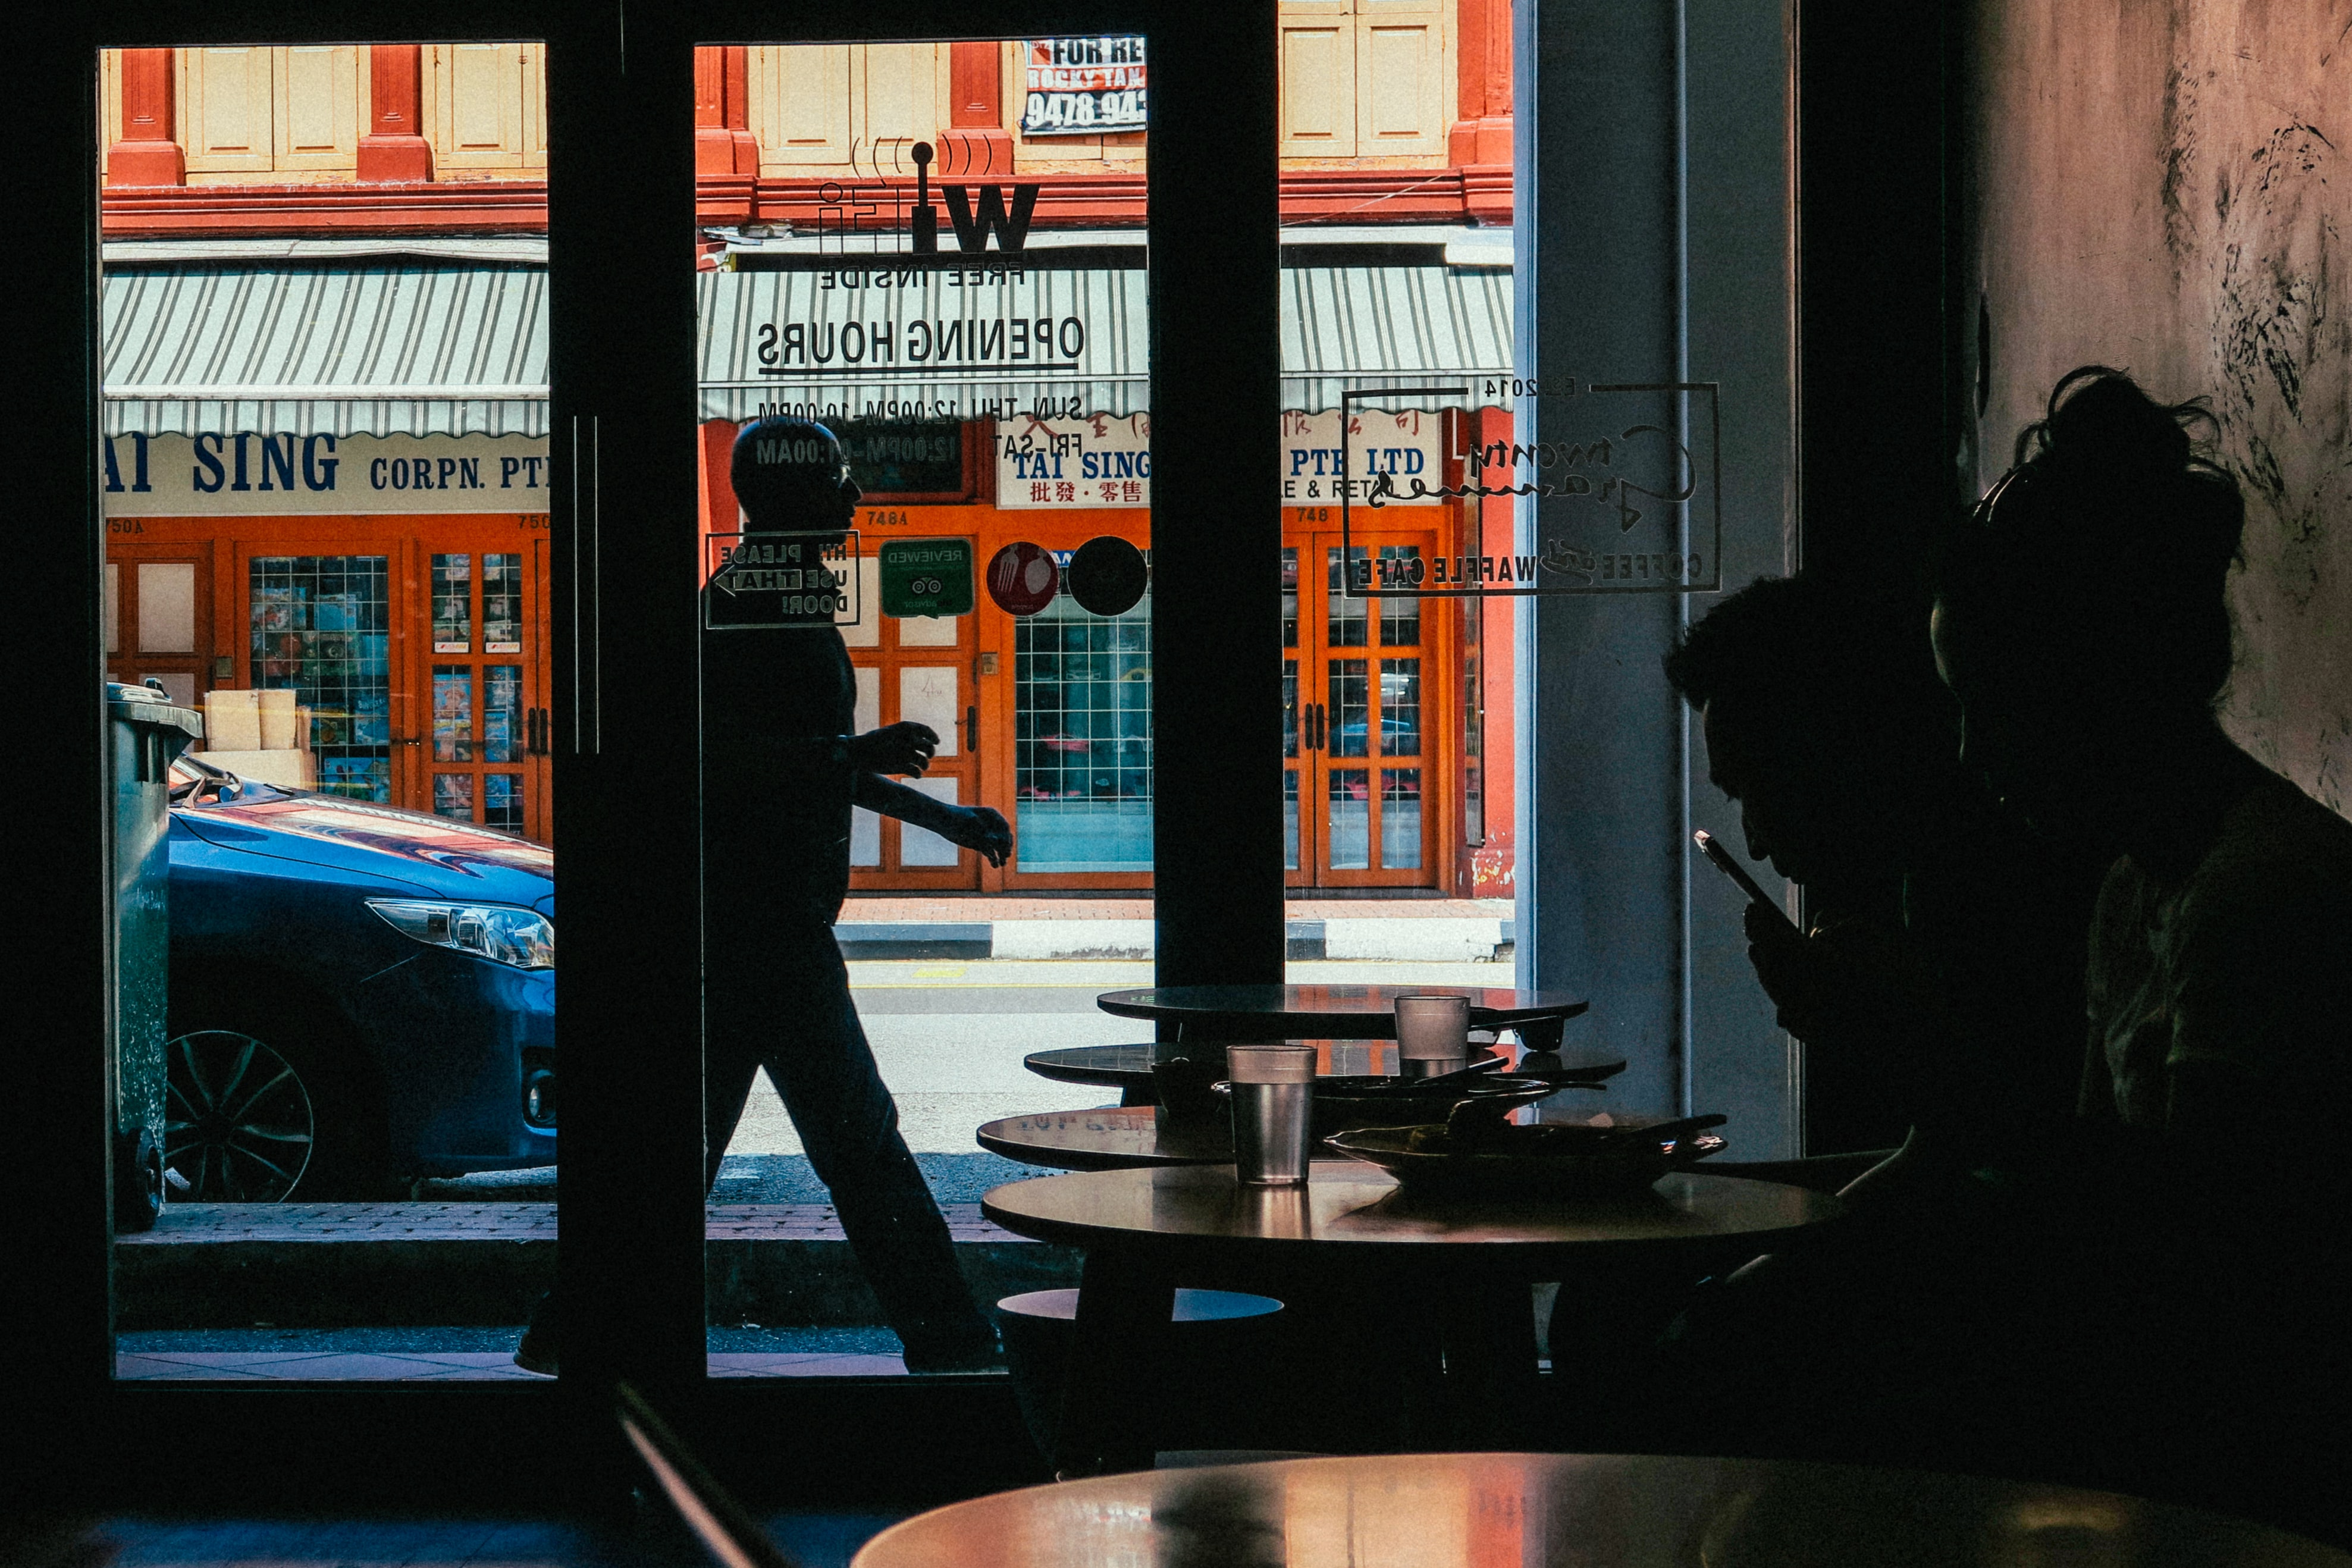 People in cafe with man walking past on sidewalk with sign on window